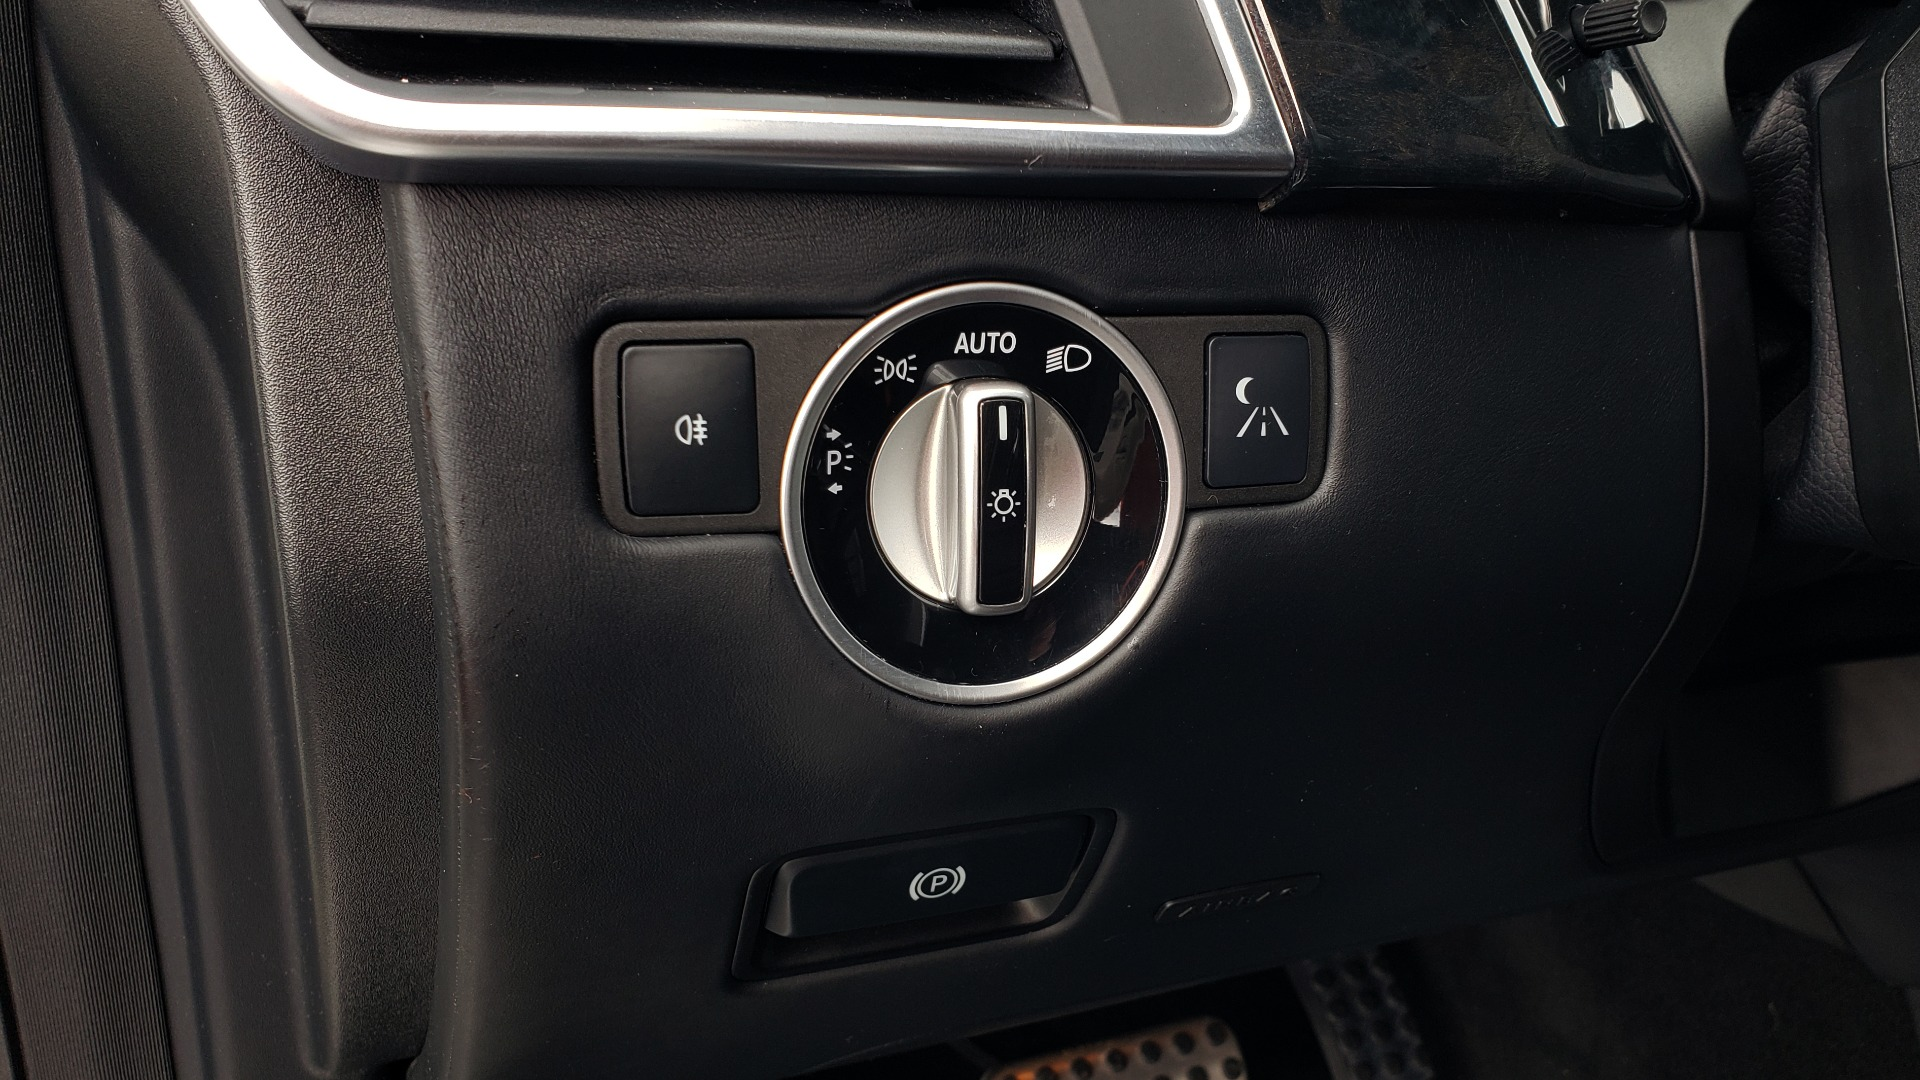 Used 2014 Mercedes-Benz GL-CLASS GL 63 AMG 4MATIC / NIGHT VIEW ASSIST PLUS / BANG & OLUFSEN SND for sale Sold at Formula Imports in Charlotte NC 28227 45